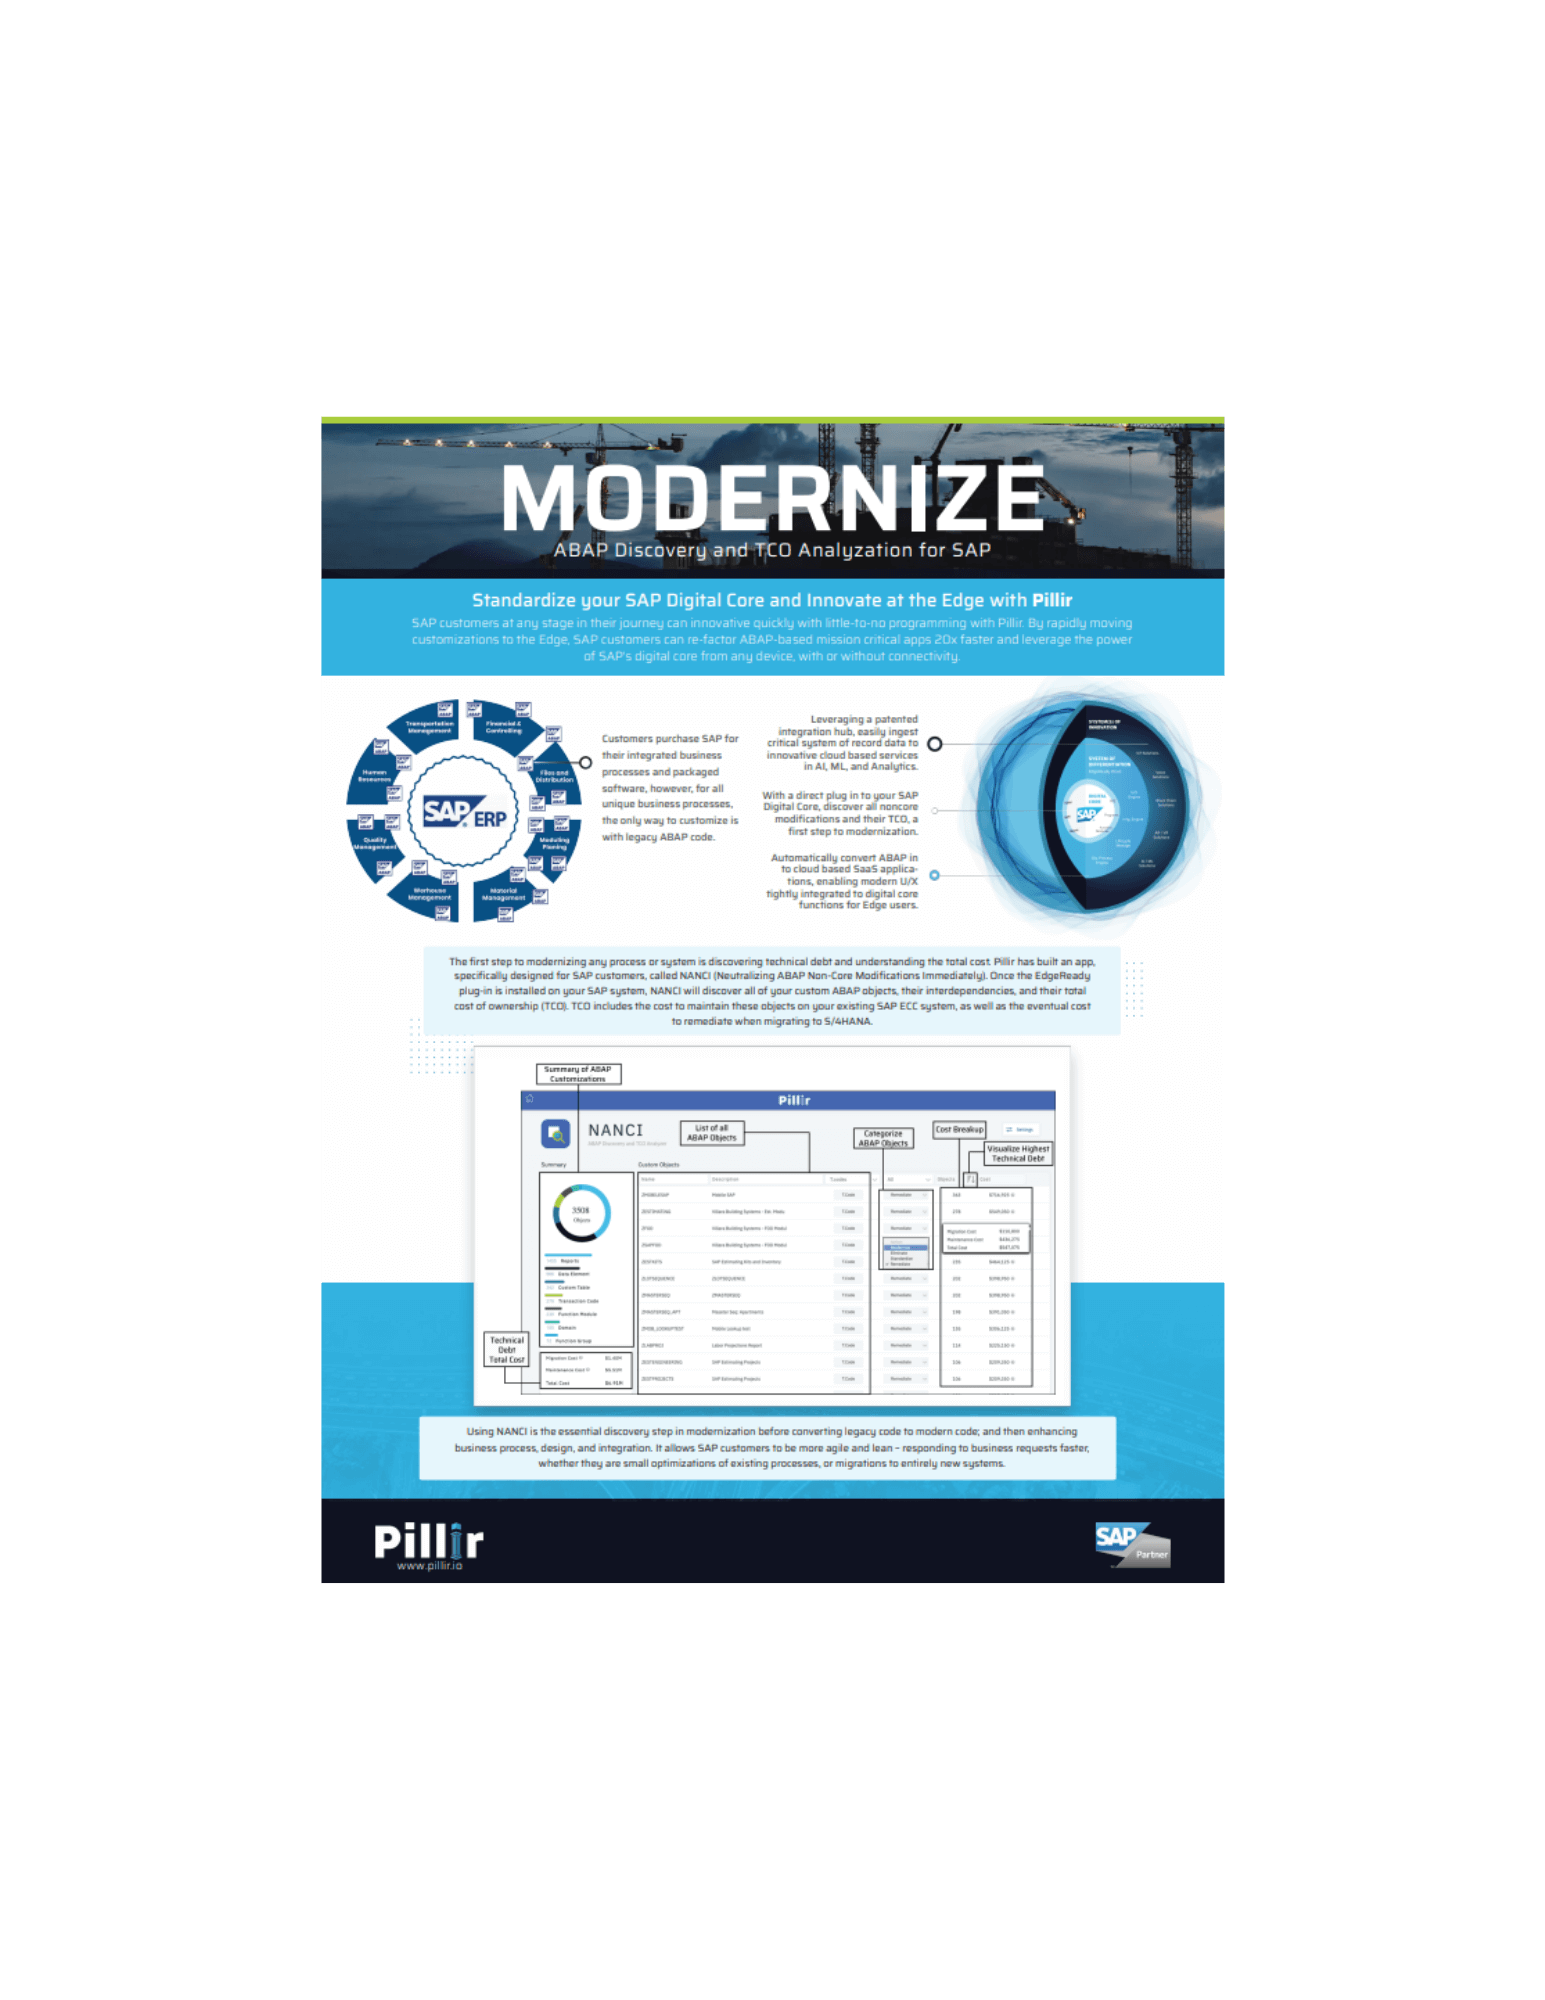 website_modernize_image